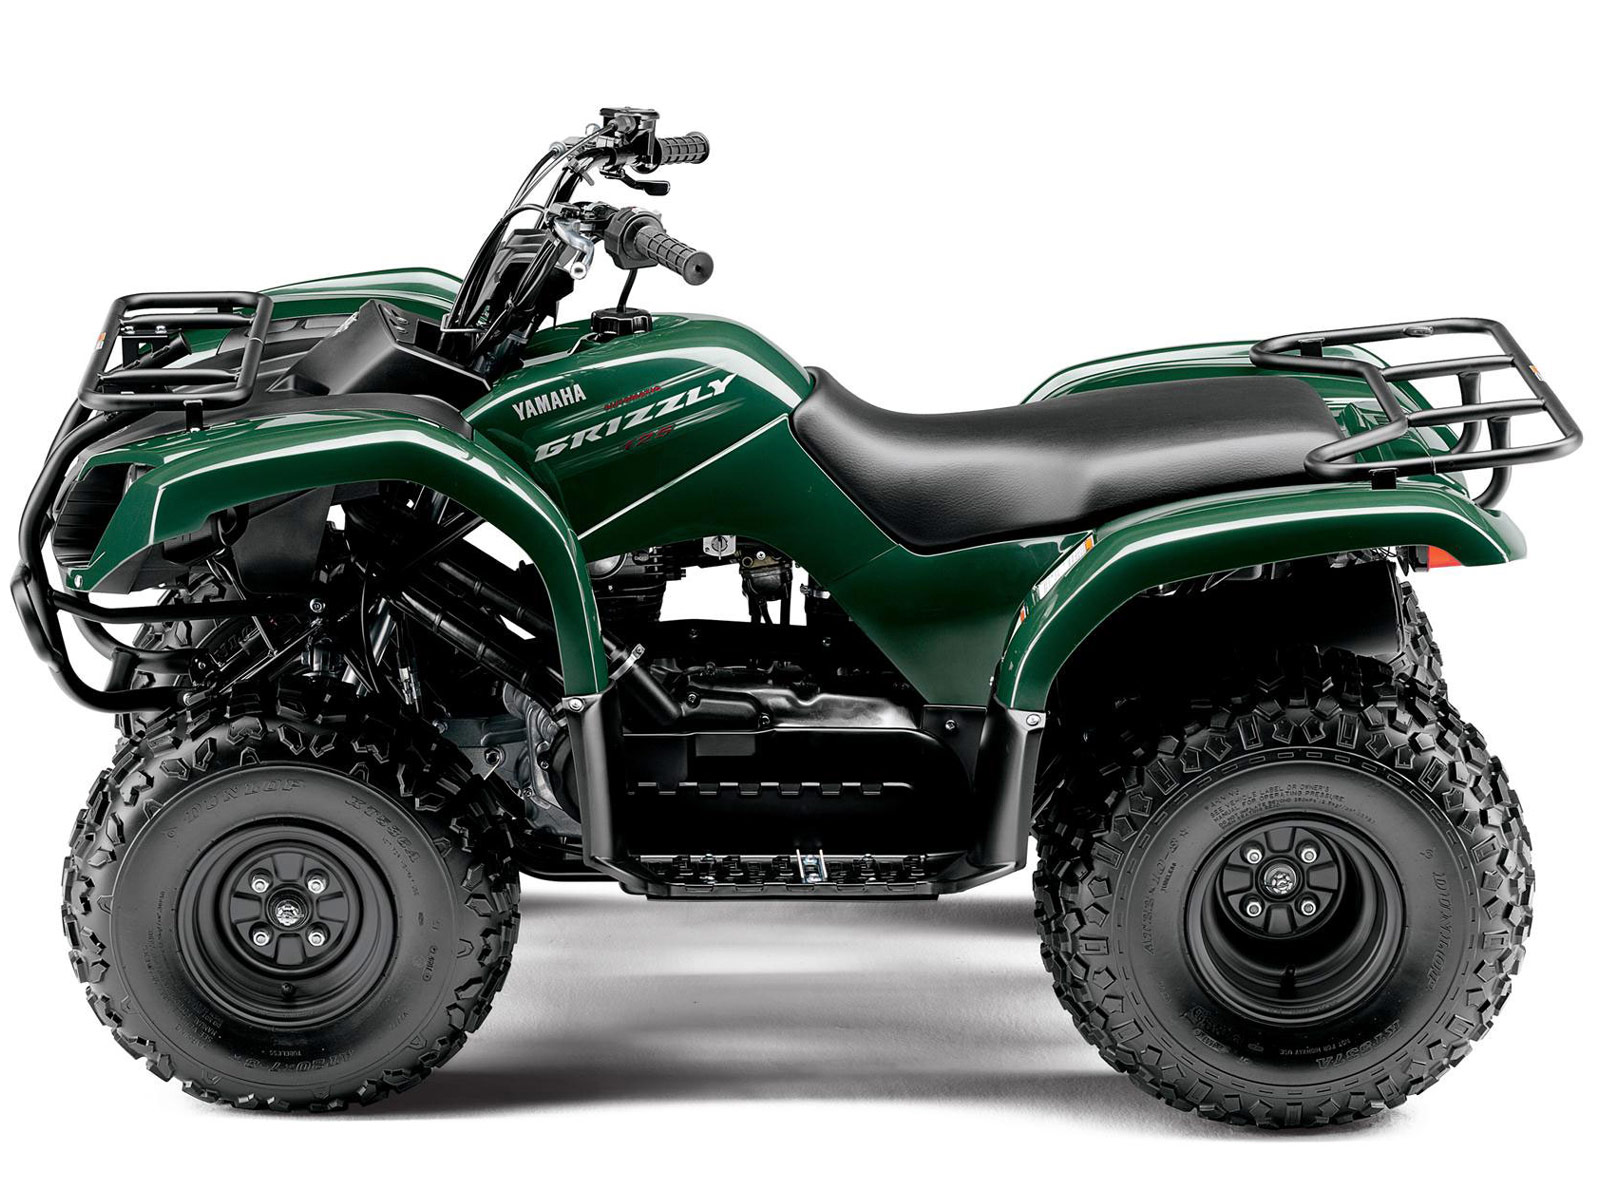 2013 grizzly 125 automatic yamaha atv pictures specifications. Black Bedroom Furniture Sets. Home Design Ideas